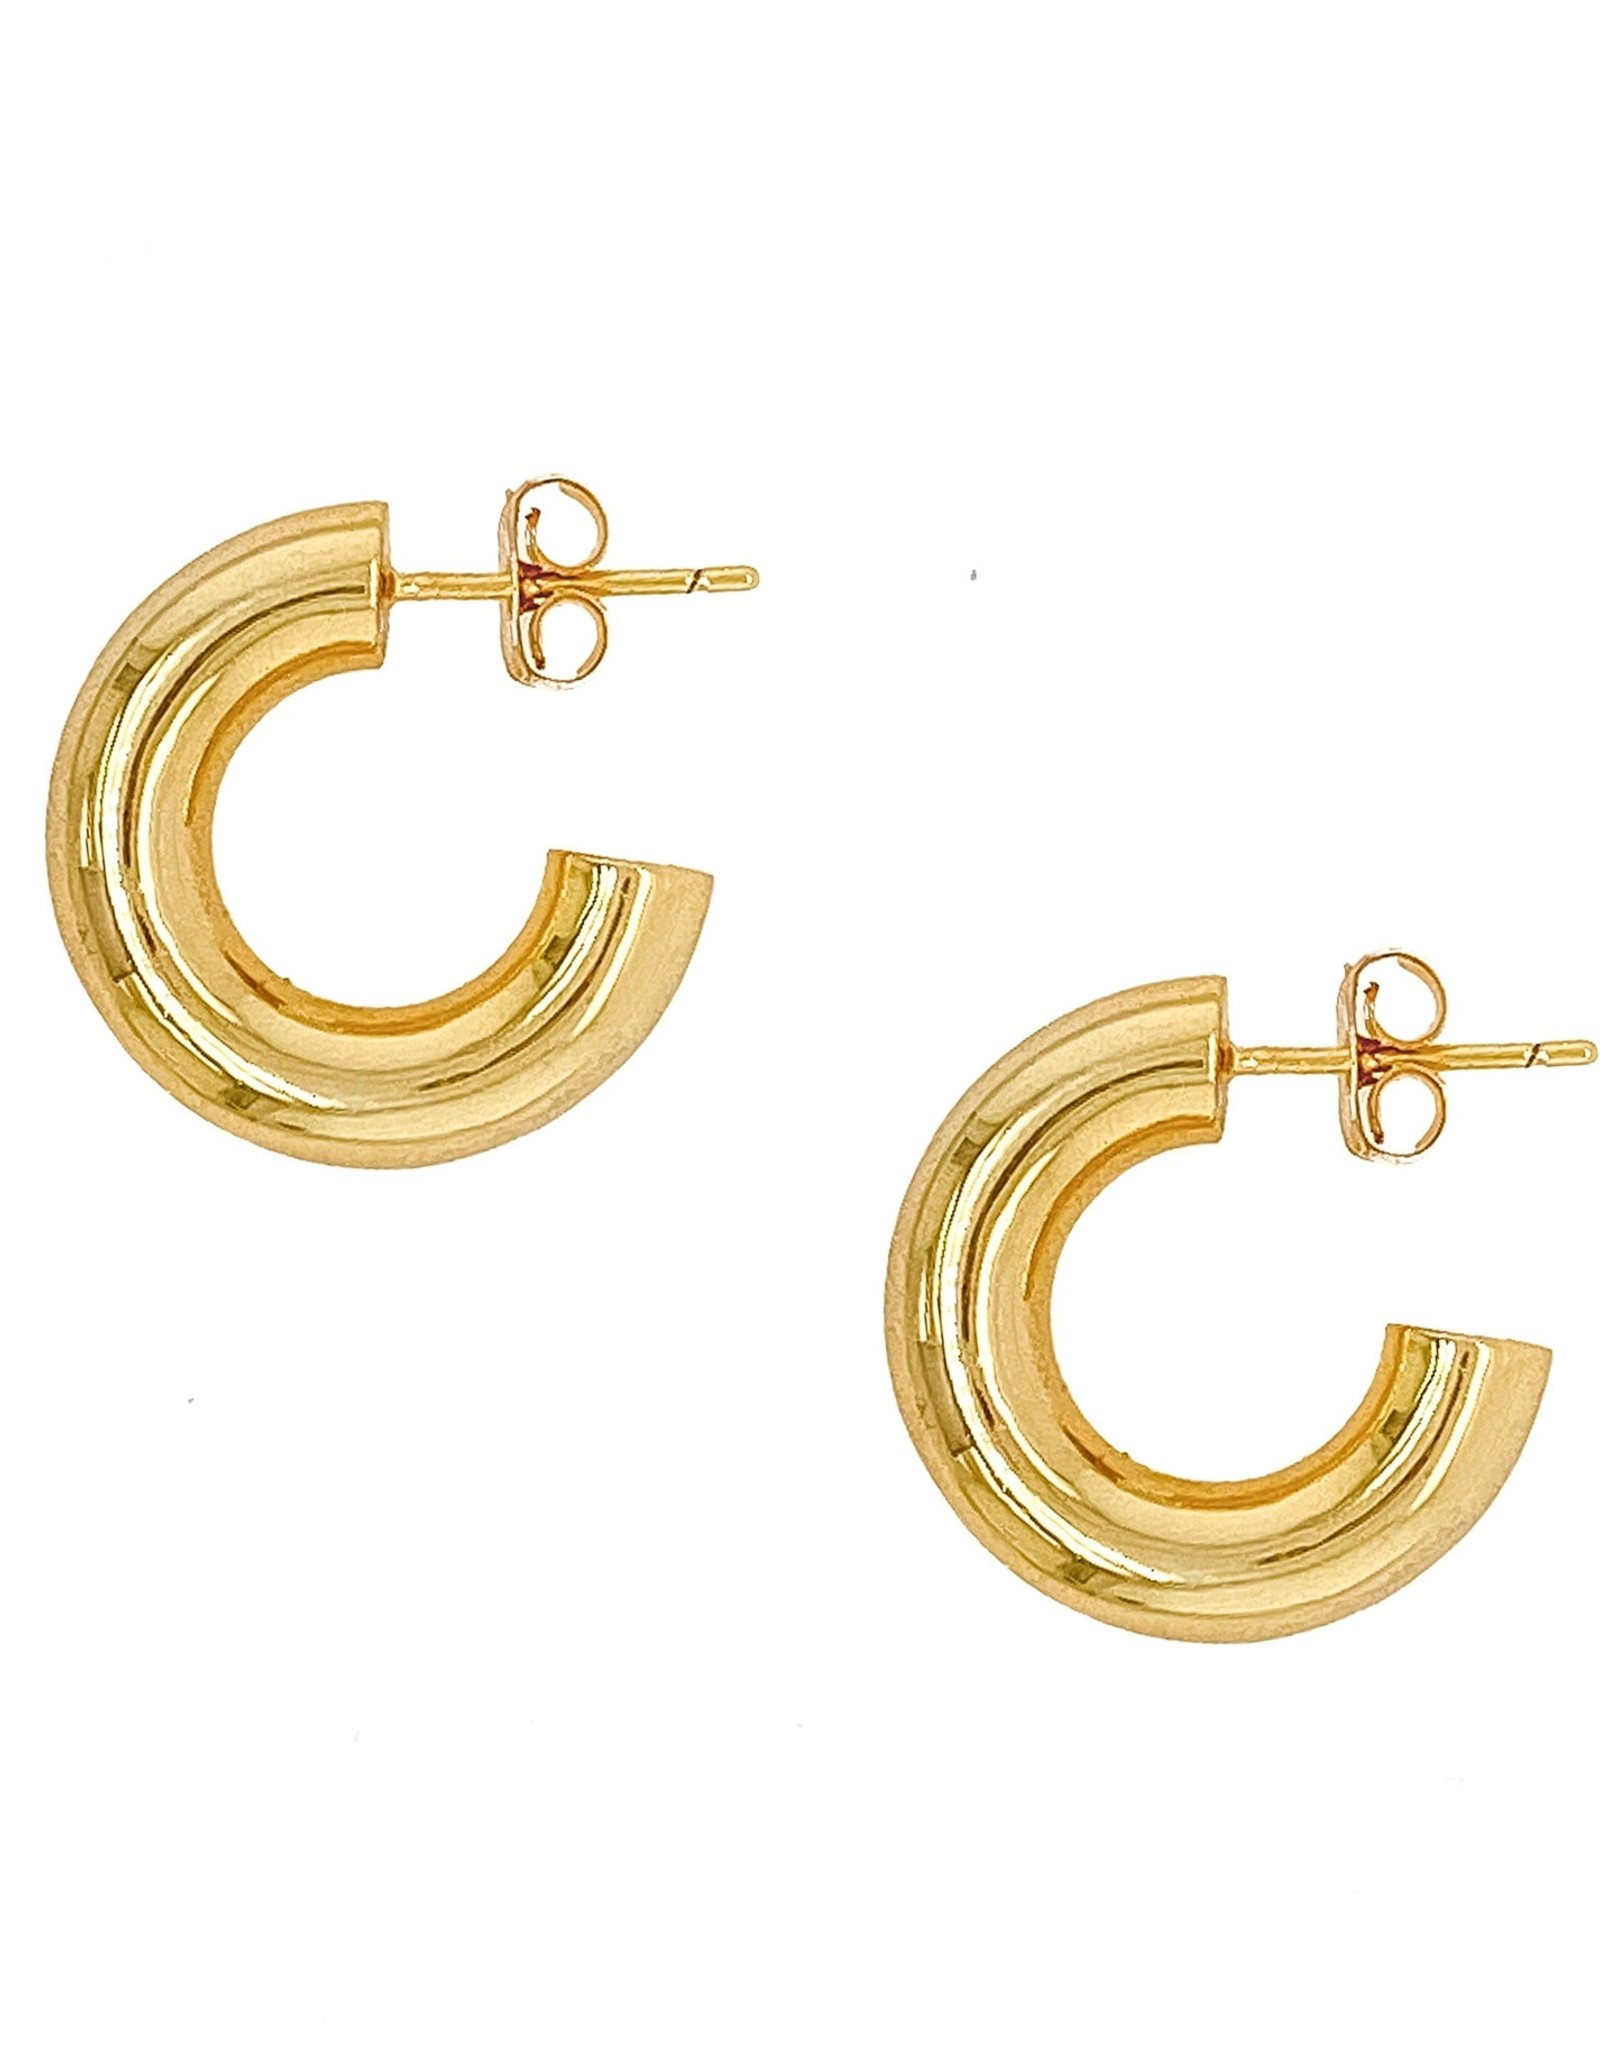 Mod + Jo Cenie Mini Tube Hoops